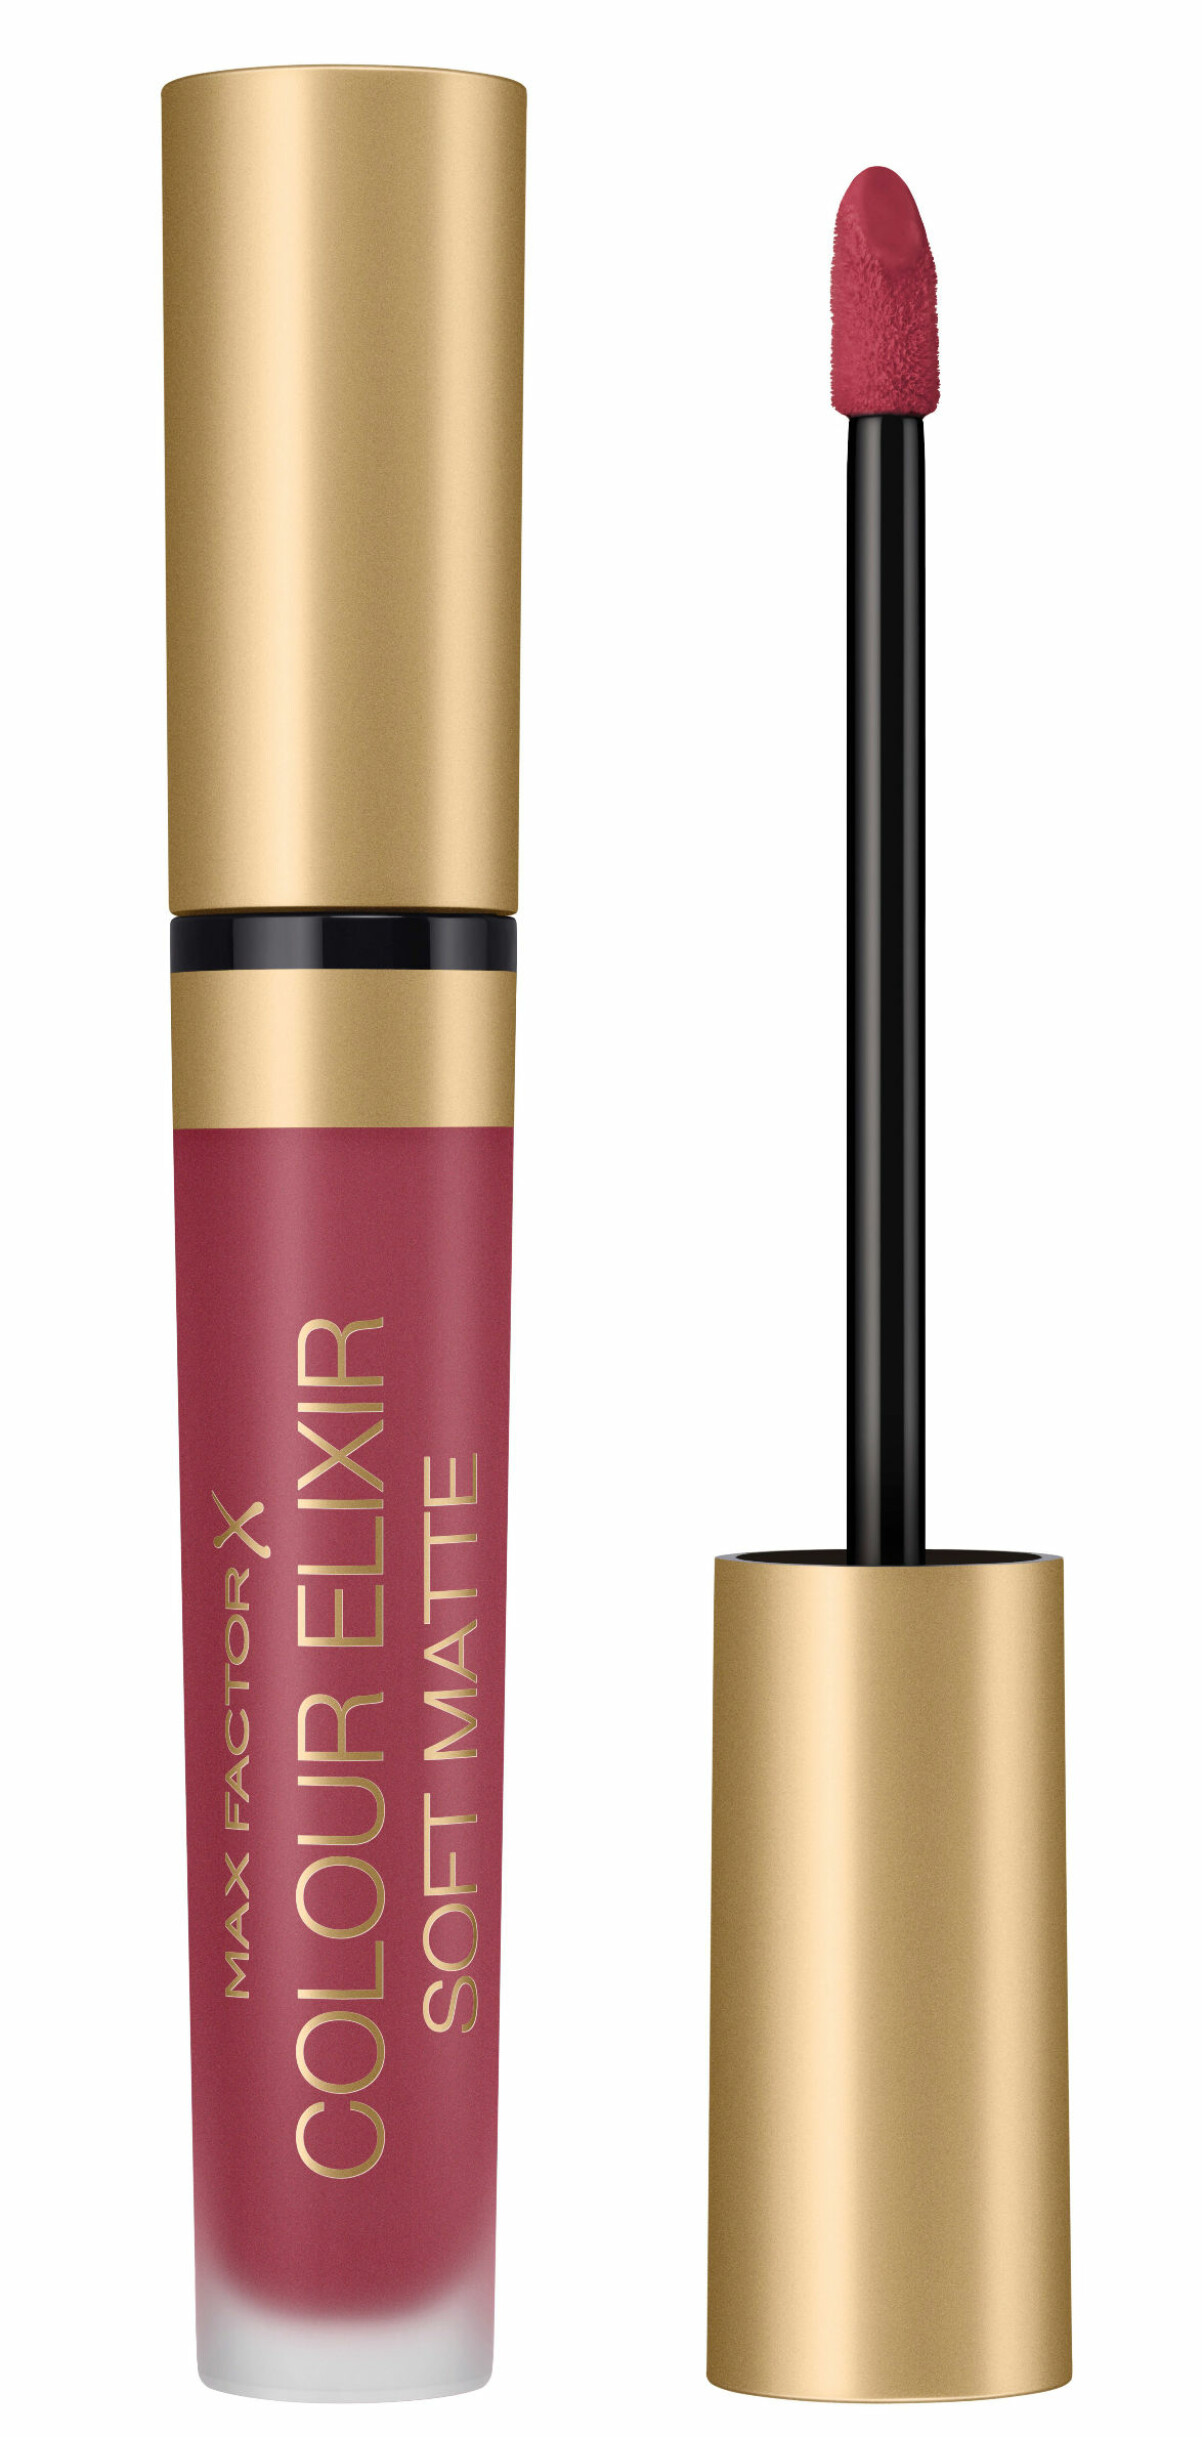 Colour Elixir Soft Matte i Faded Red, Max Factor.